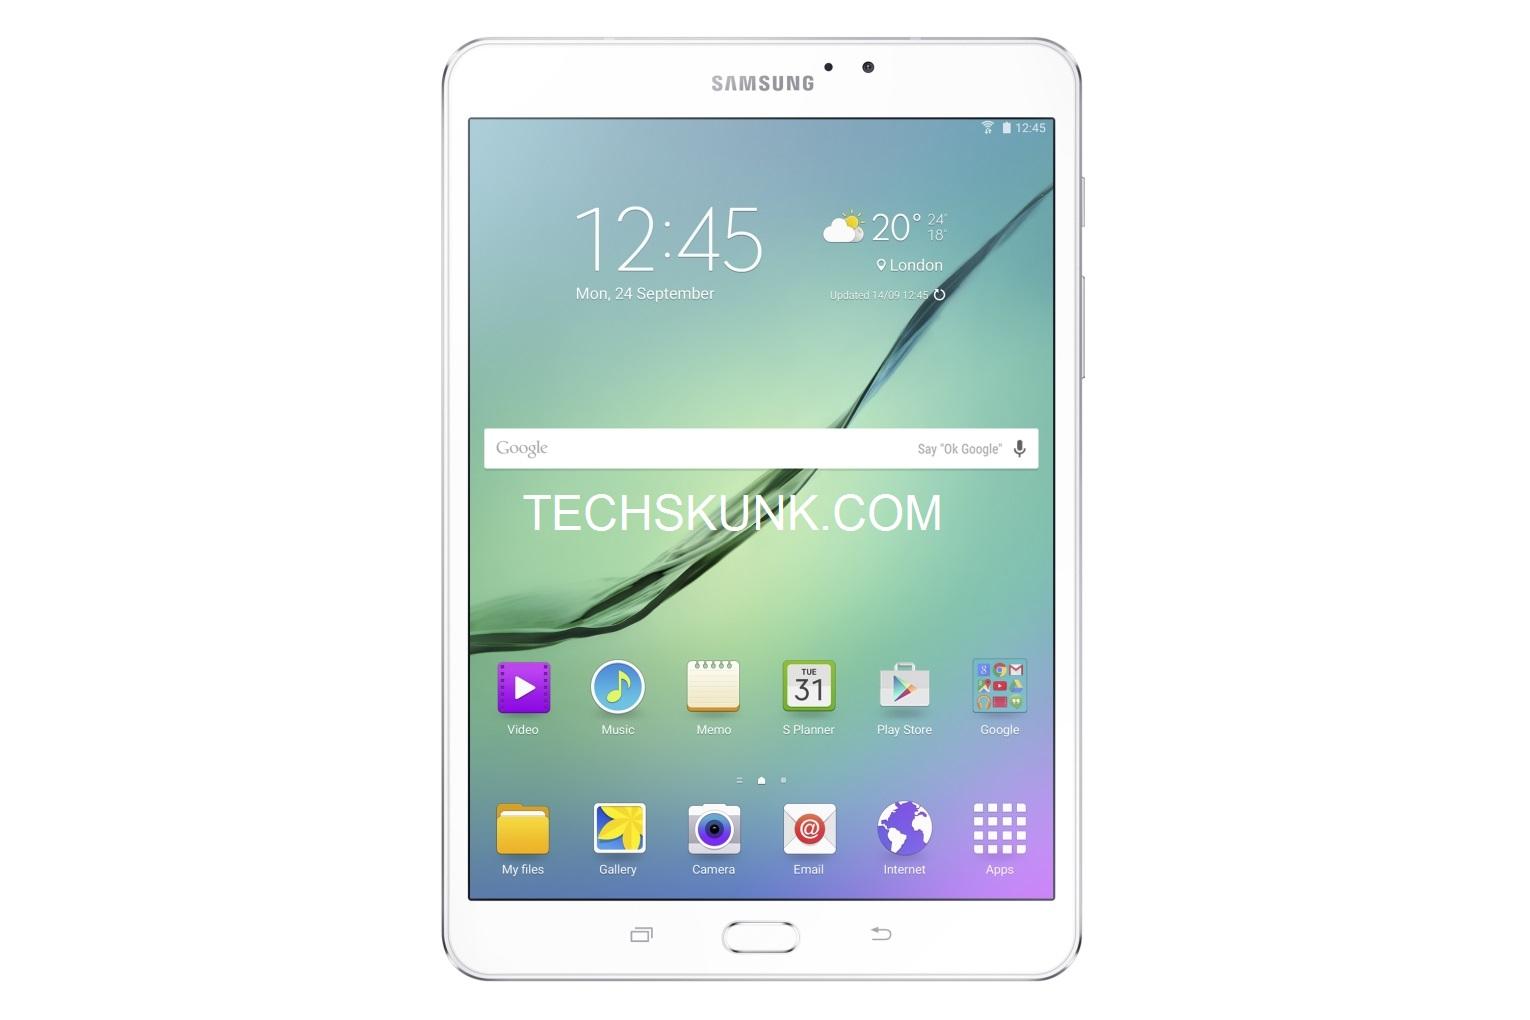 samsung galaxy tab s2 8 0 specs images release leaks. Black Bedroom Furniture Sets. Home Design Ideas